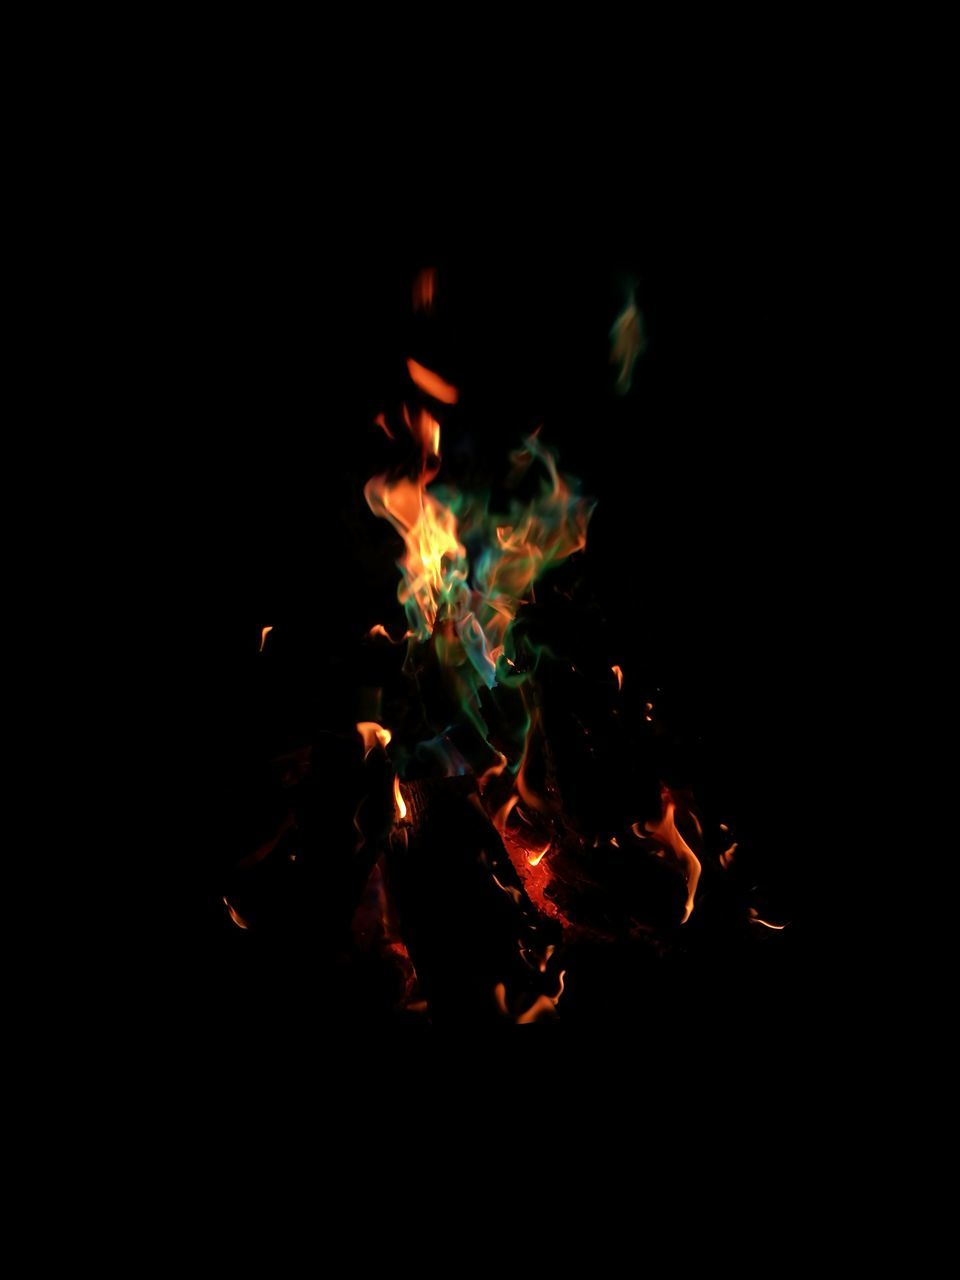 burning, flame, night, heat - temperature, bonfire, no people, campfire, close-up, fire pit, outdoors, black background